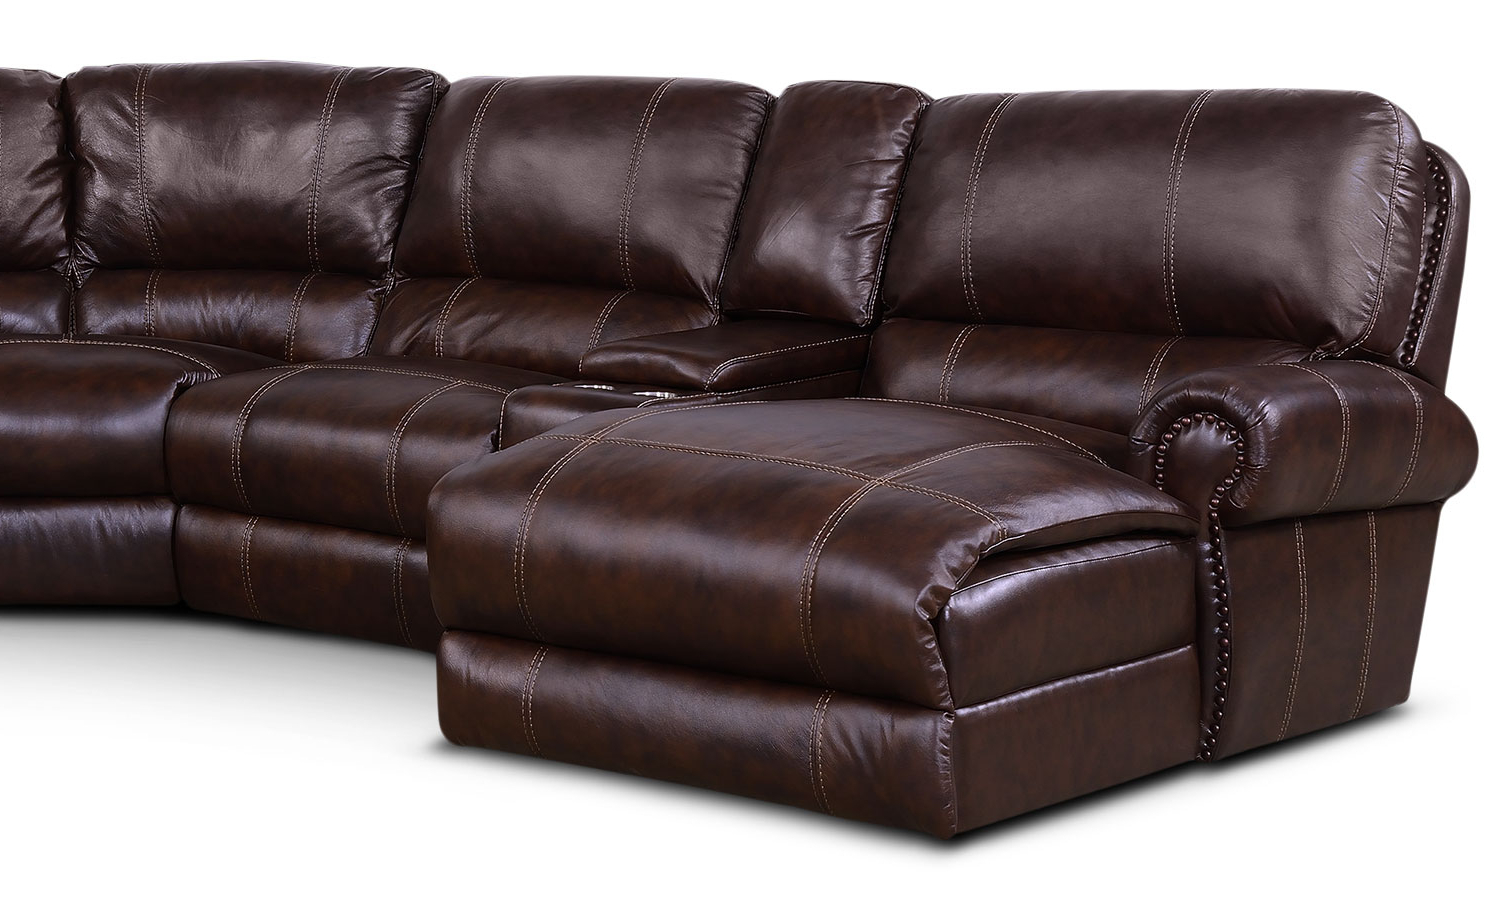 Dartmouth 6 Piece Power Reclining Sectional With 2 Reclining Seats Inside Well Known Norfolk Chocolate 6 Piece Sectionals With Laf Chaise (Gallery 8 of 20)